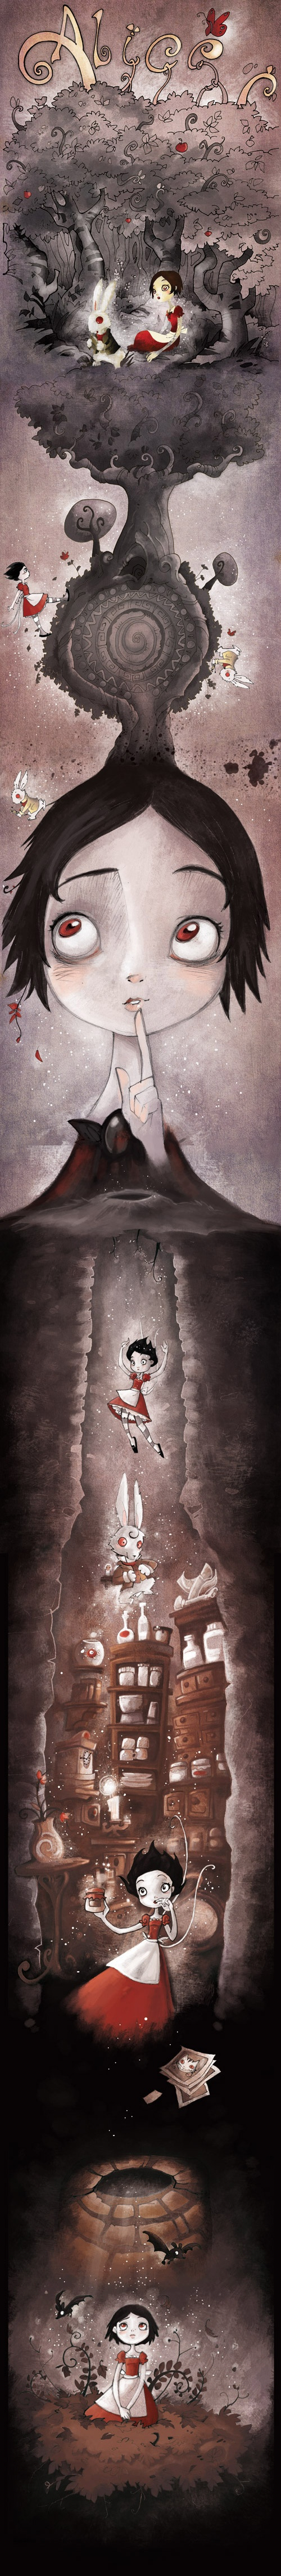 Amazing whimsical art! <3 Alice Underground by The Lab - Down the rabbit hole, wonderland art